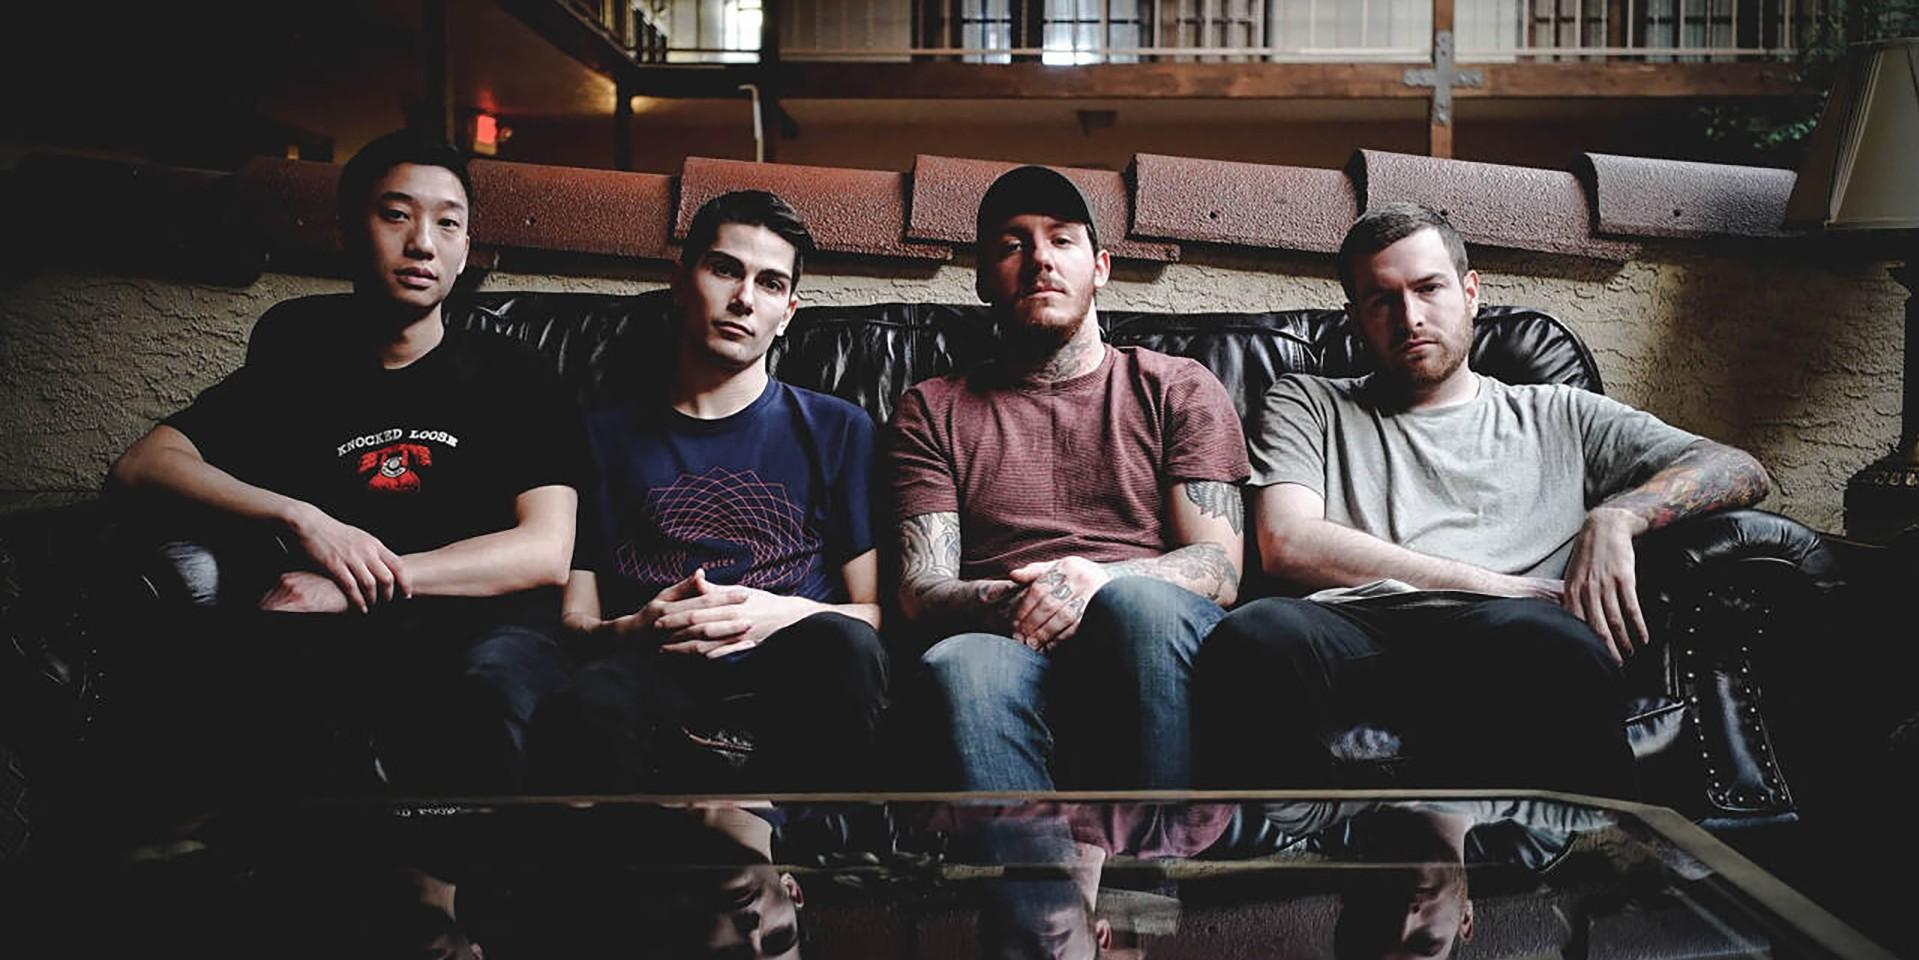 counterparts band promo